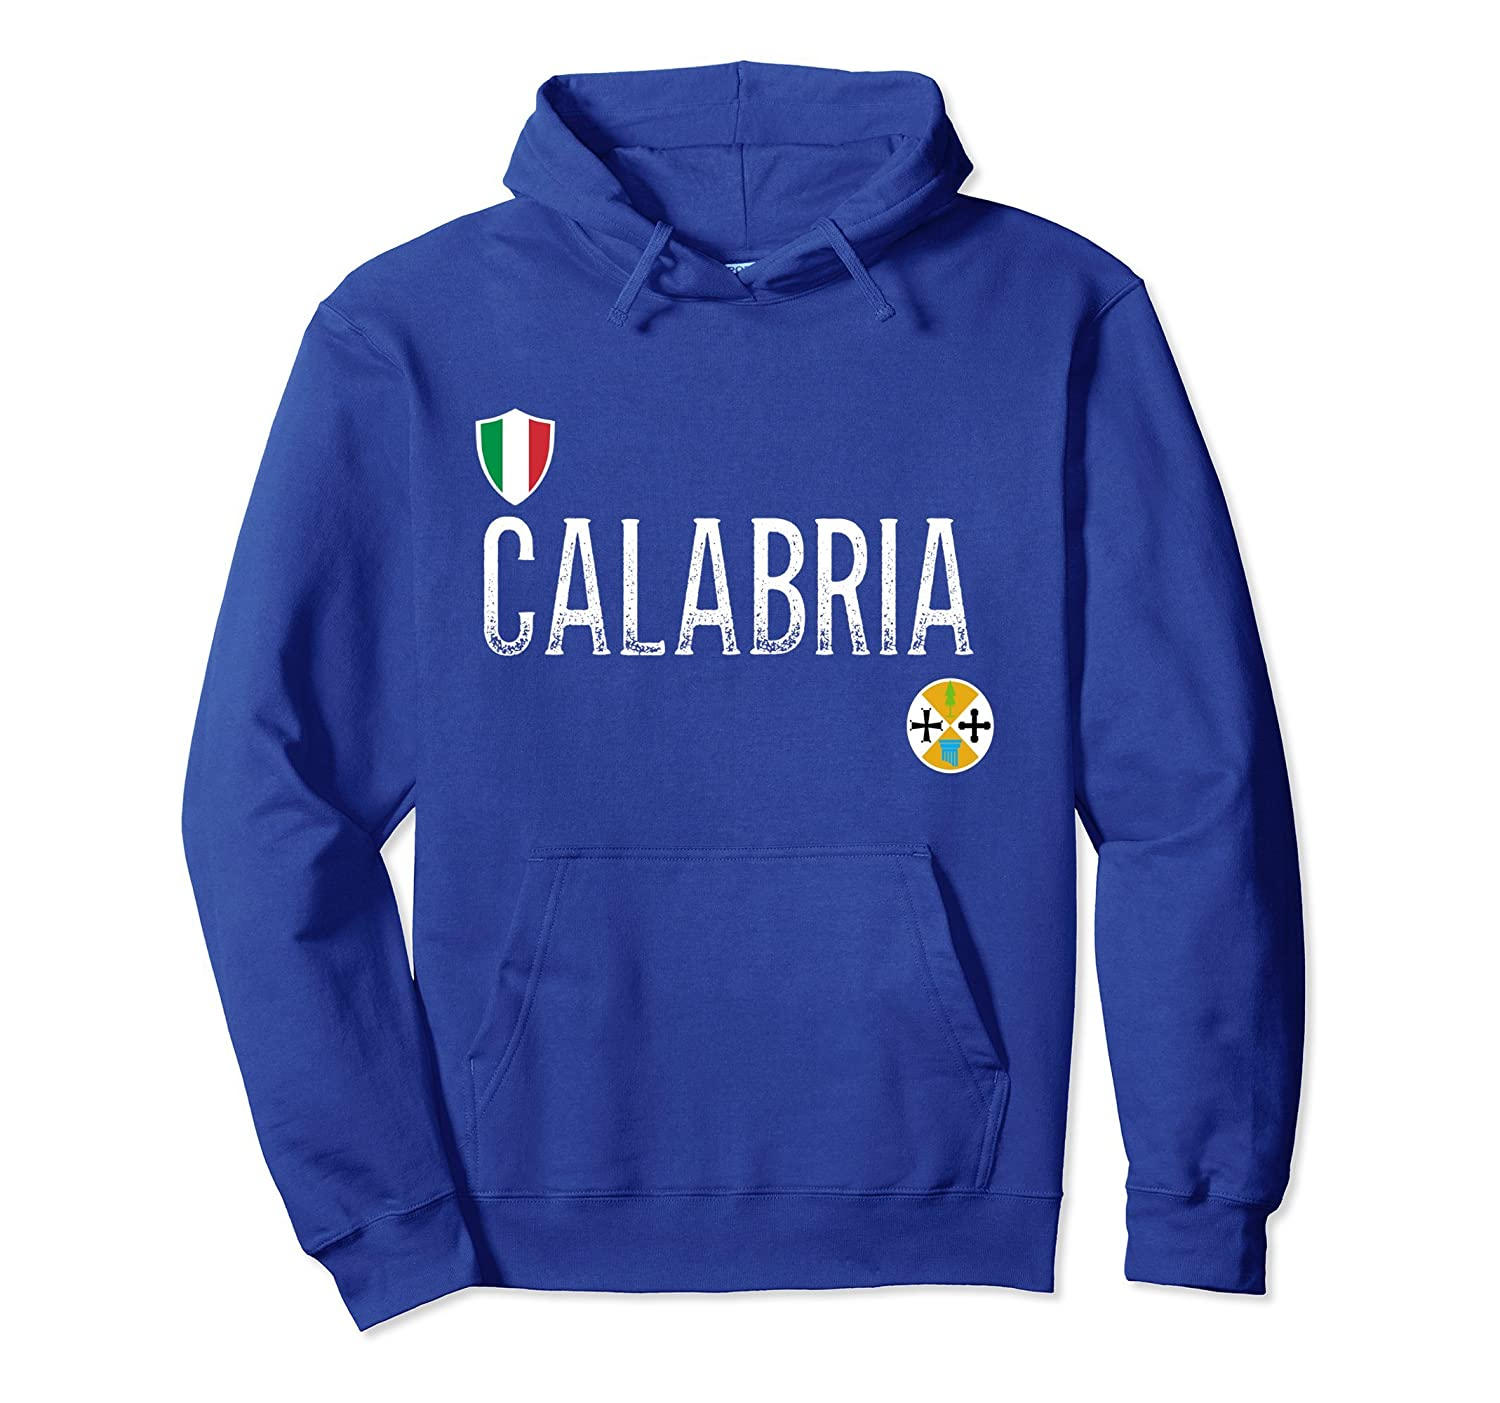 Calabria hoodie - Calabrian soccer style hooded sweatshirt-ah my shirt one gift